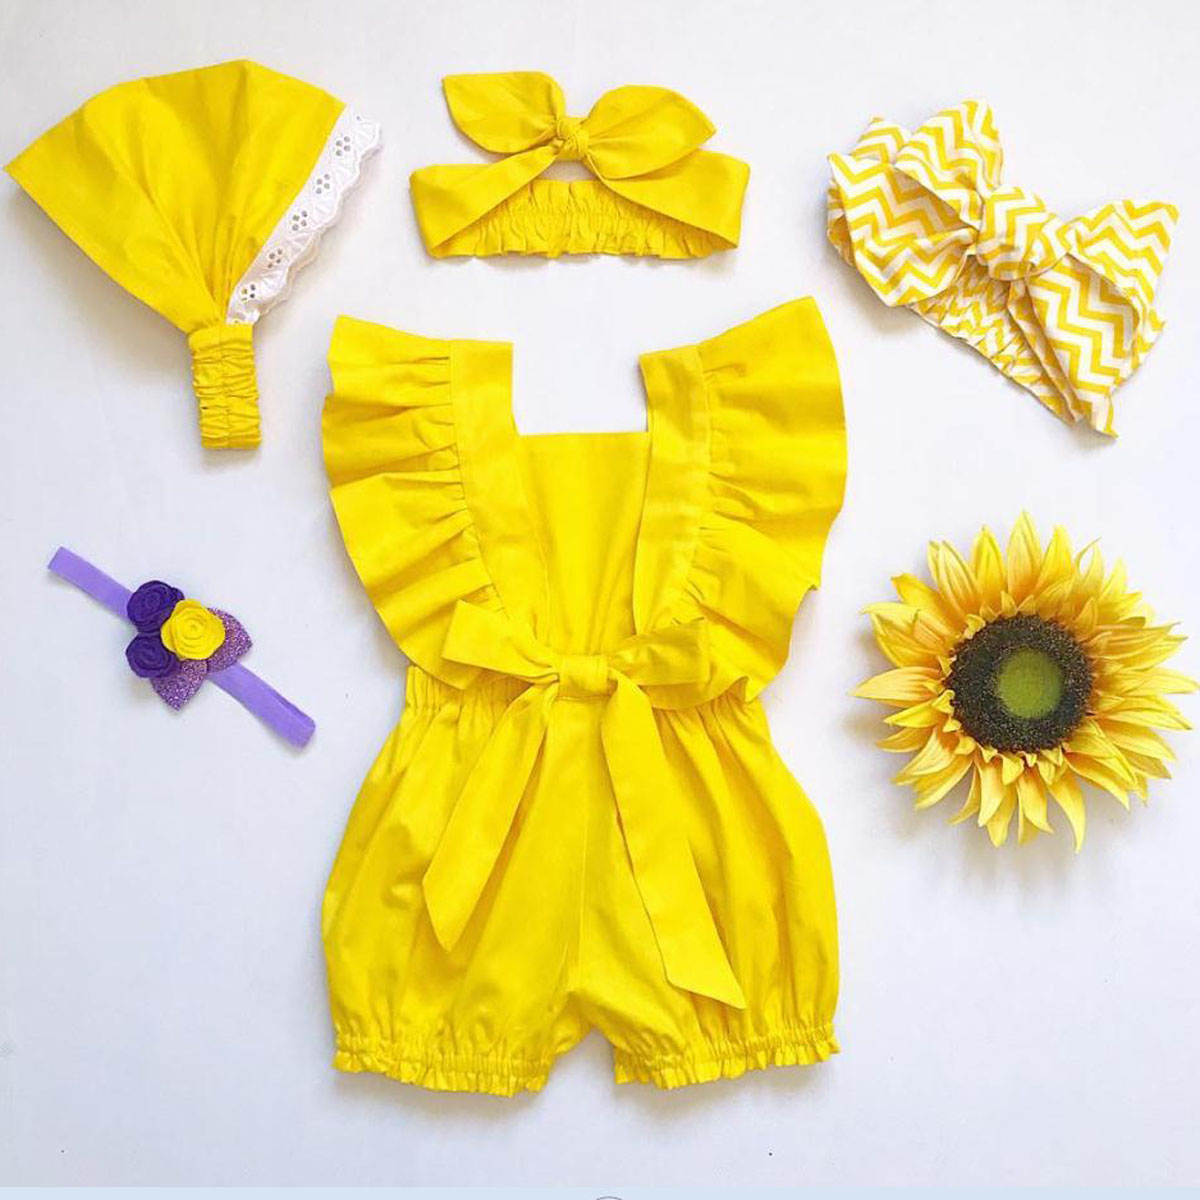 4b75afaf84ad6 HOT SALE] Newborn Baby Girl Clothes Fly Sleeve Ruffle Romper ...